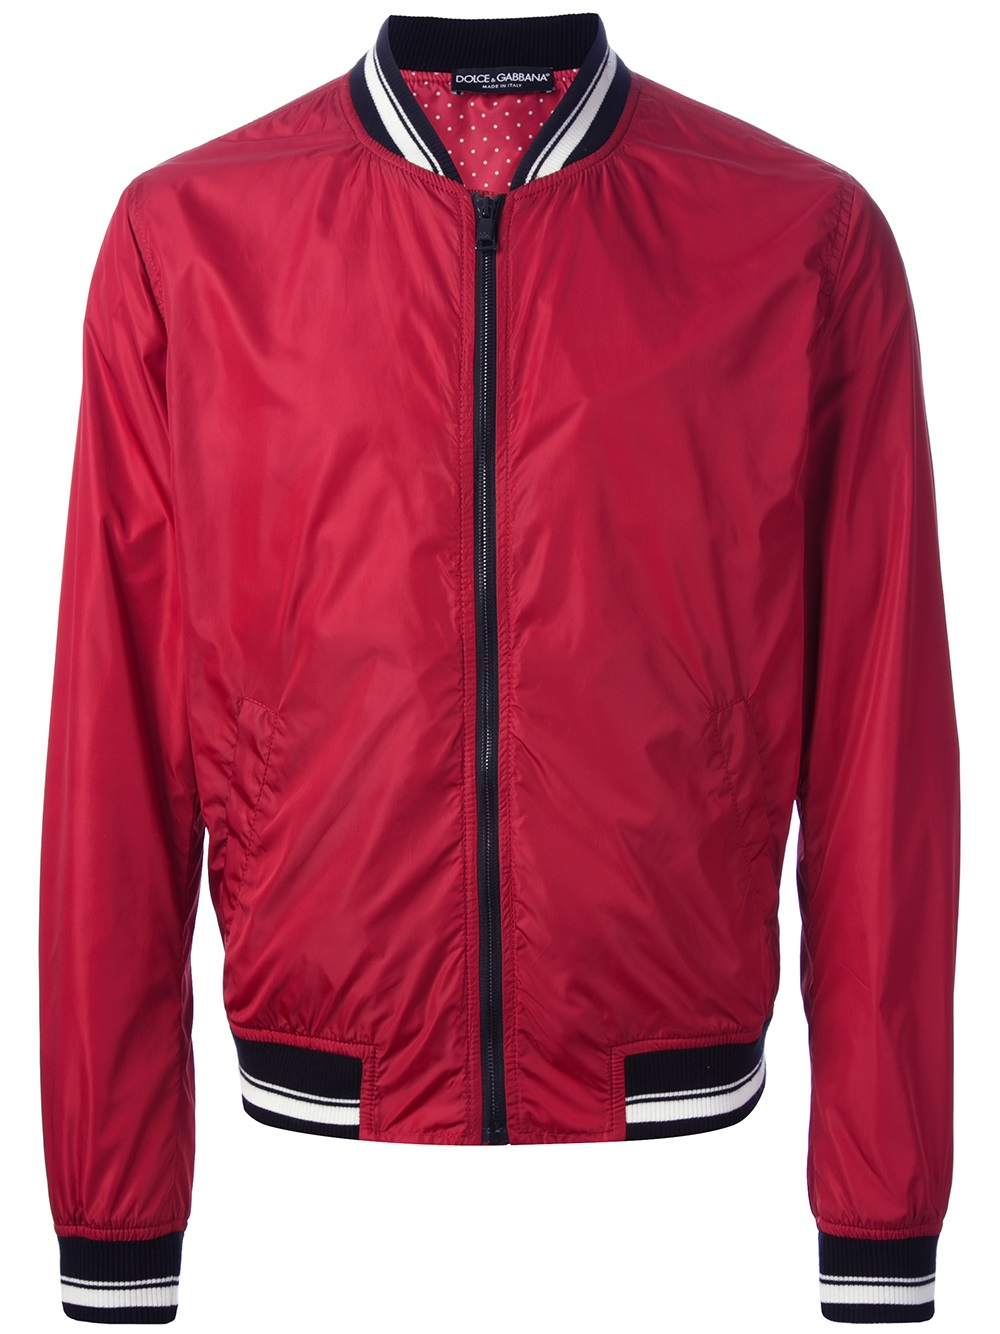 Dolce-gabbana-red-bomber-jacket-1